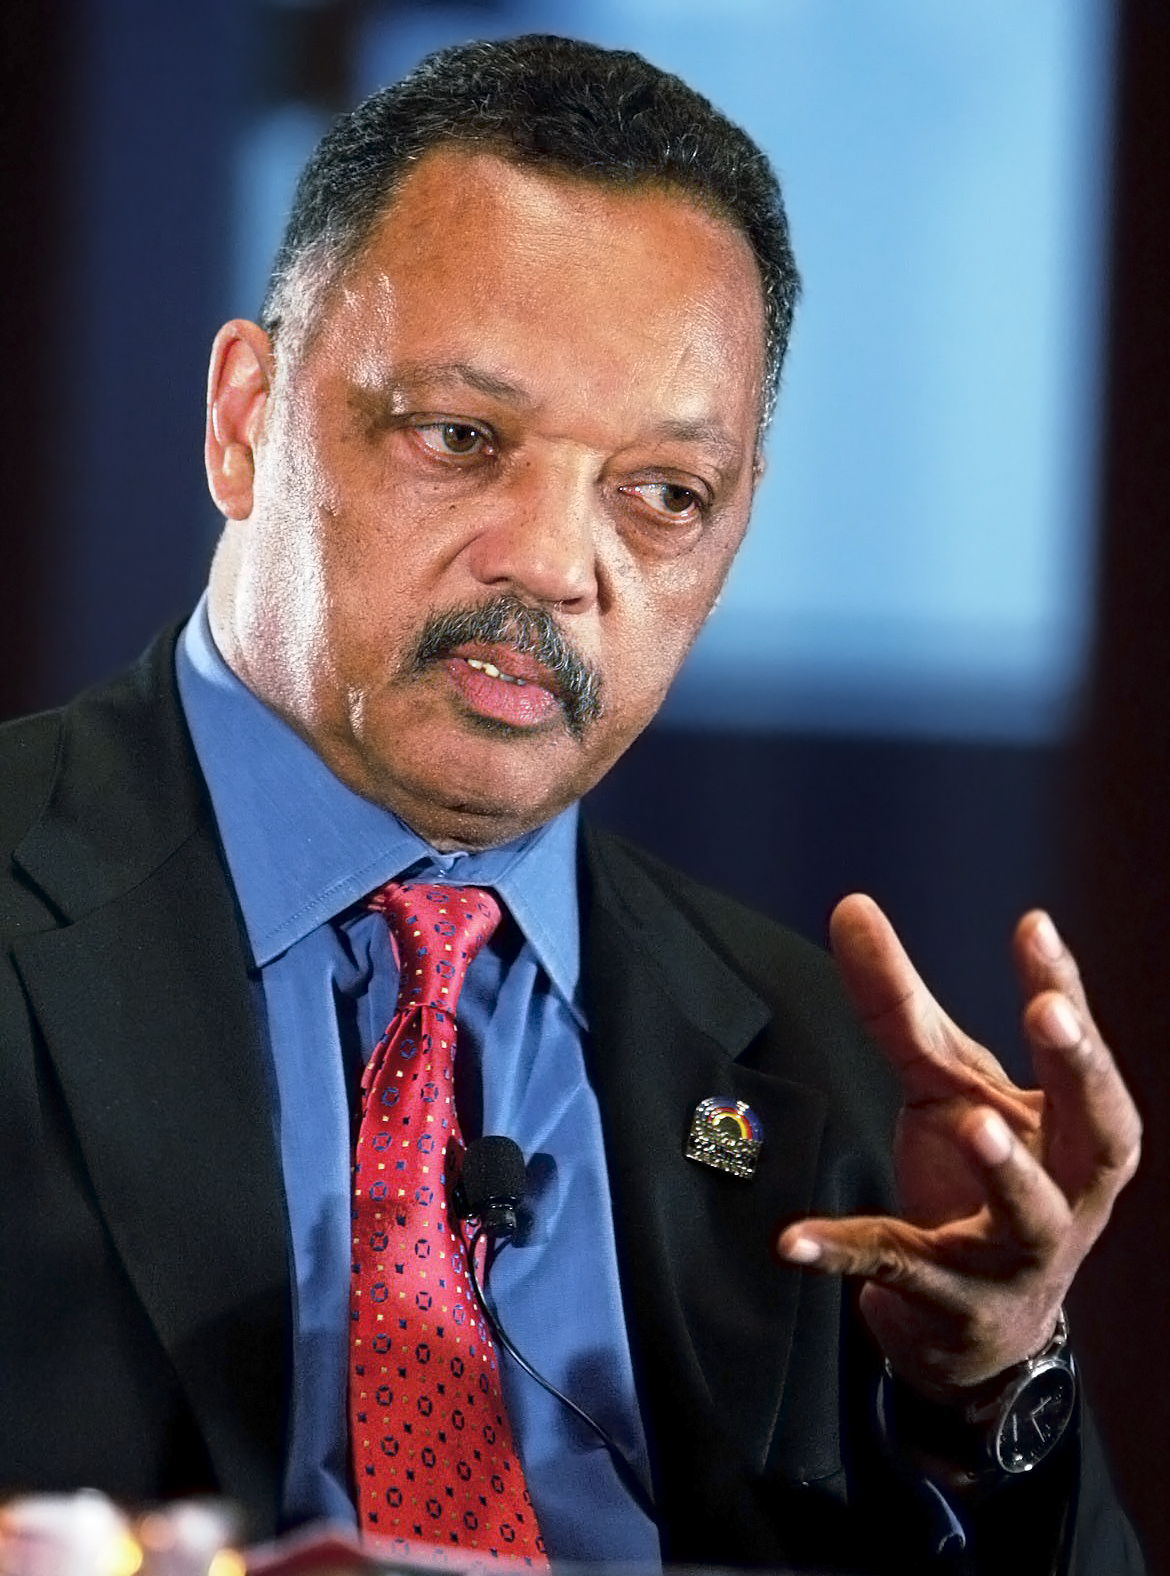 Description Jesse Jackson at Max Palevsky Cinema crop edit.jpg